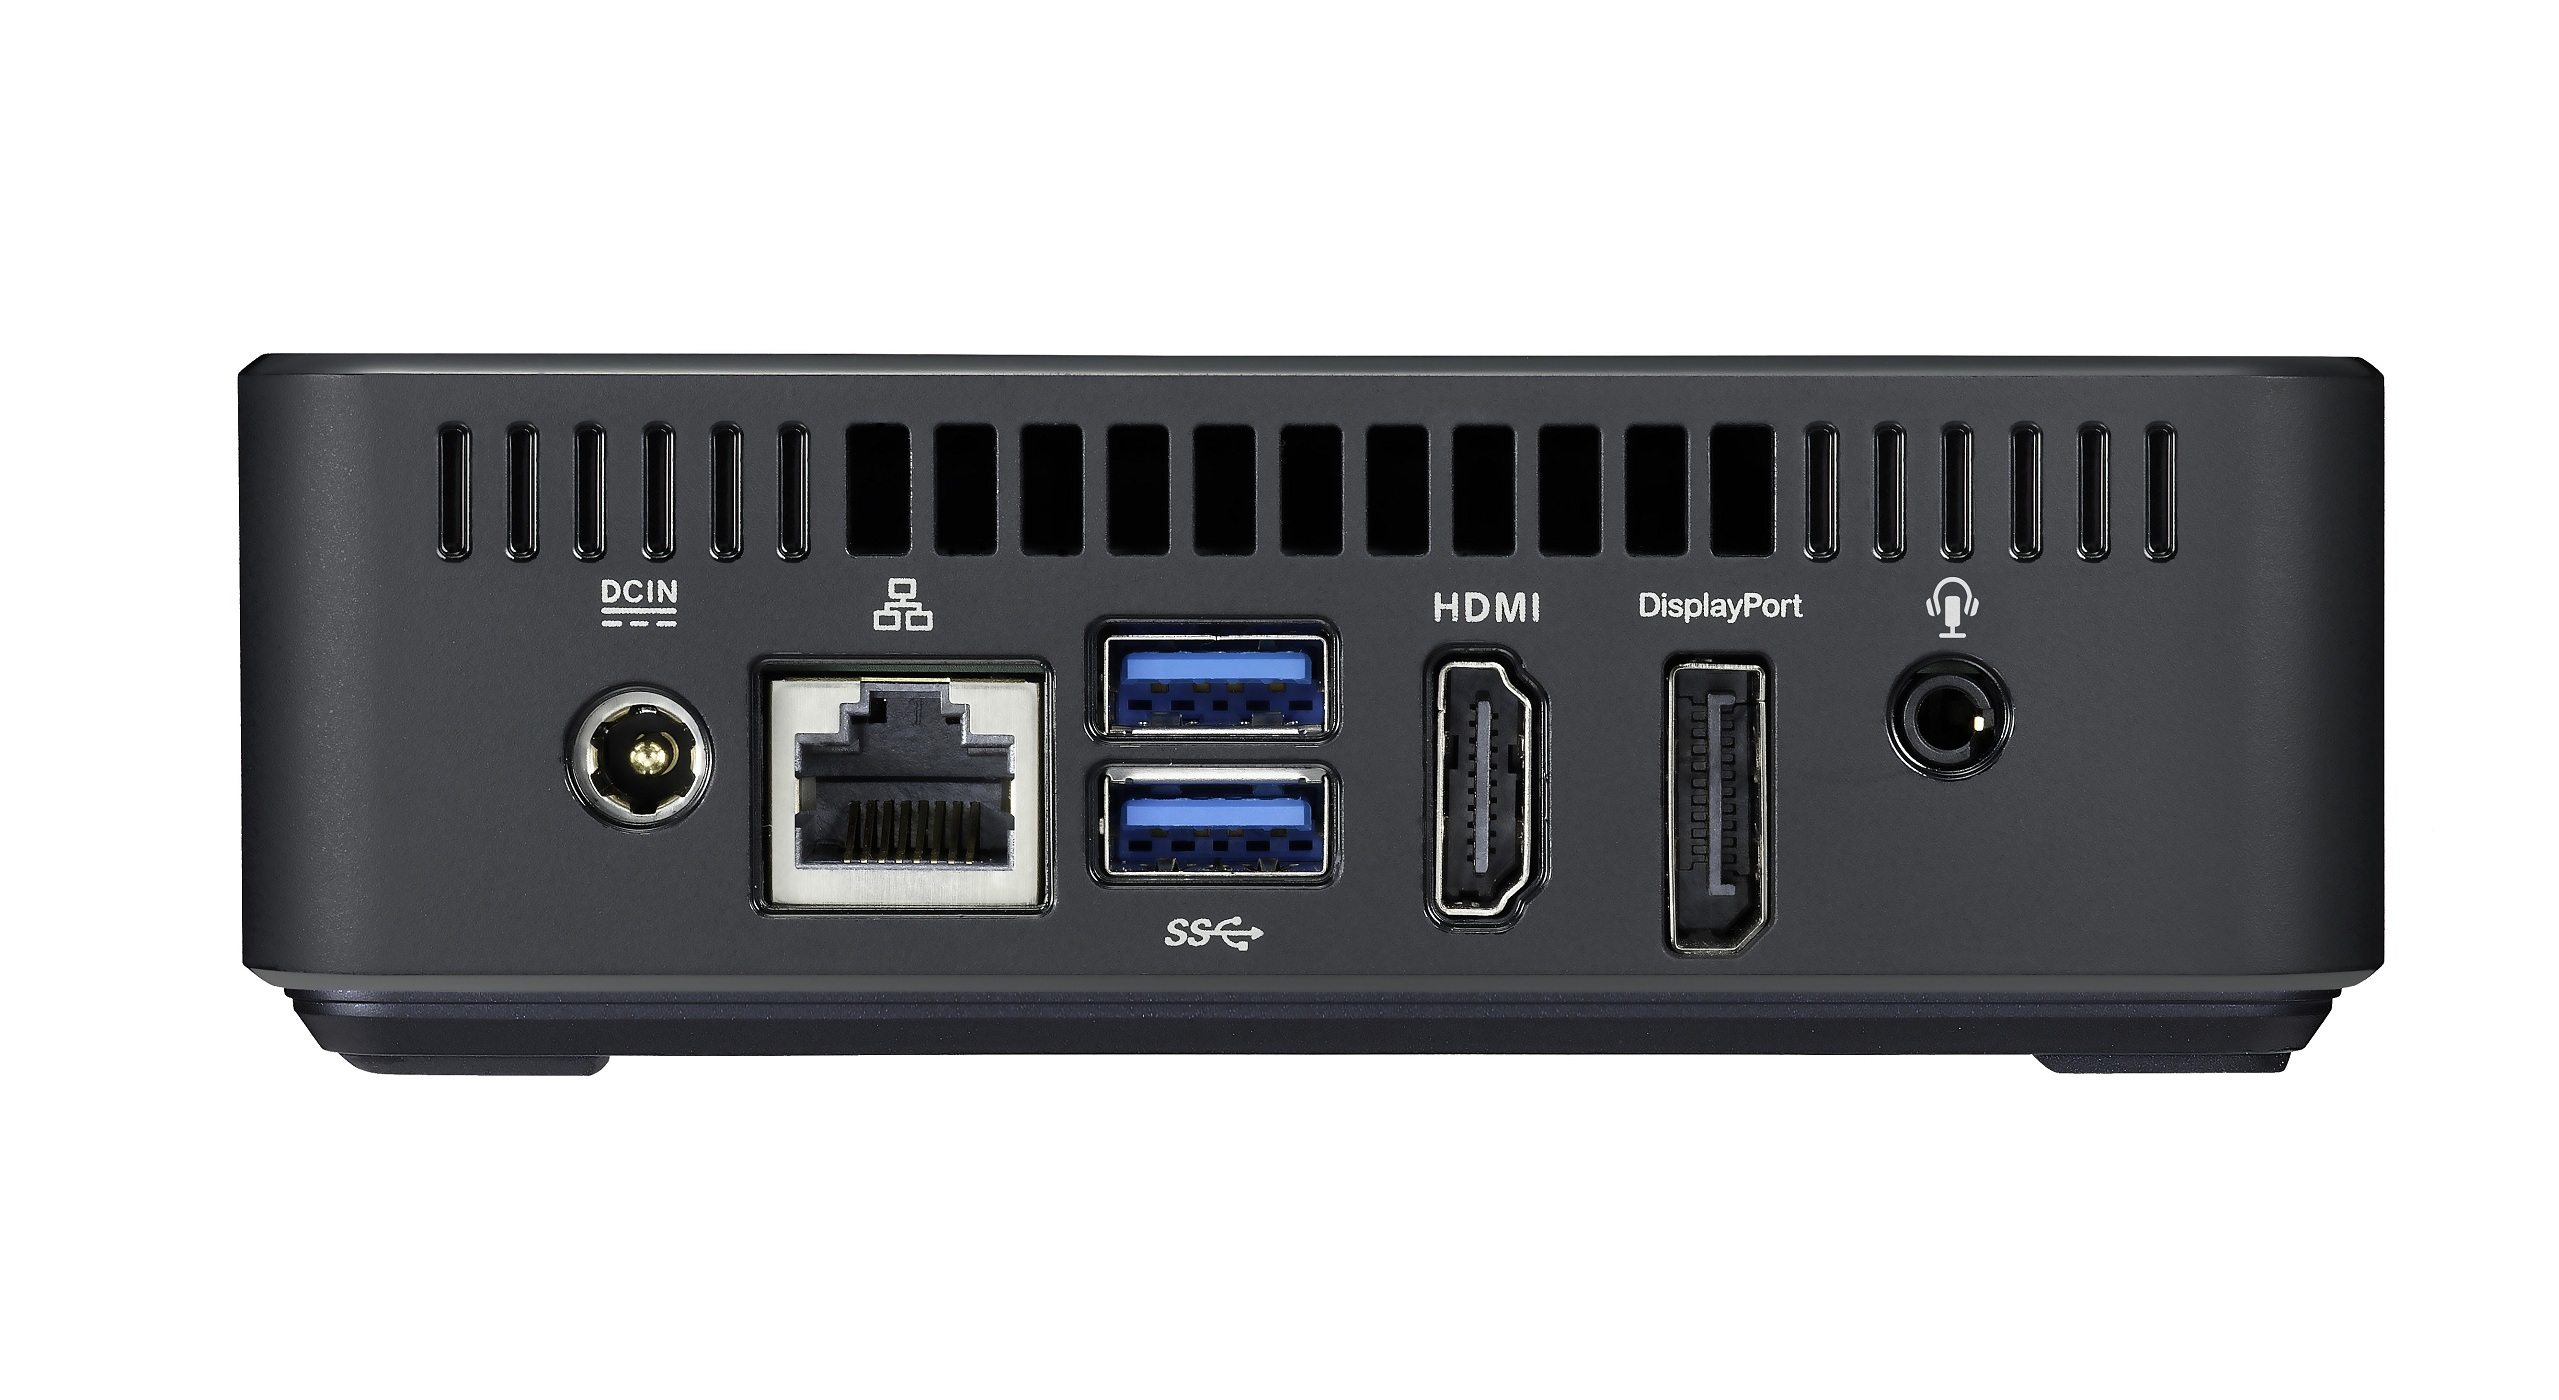 In addition to the USB ports on the front, the box includes two more USB 3.0 ports on the back, one gigabit Ethernet jack, one full-size HDMI port, and one full-size DisplayPort.